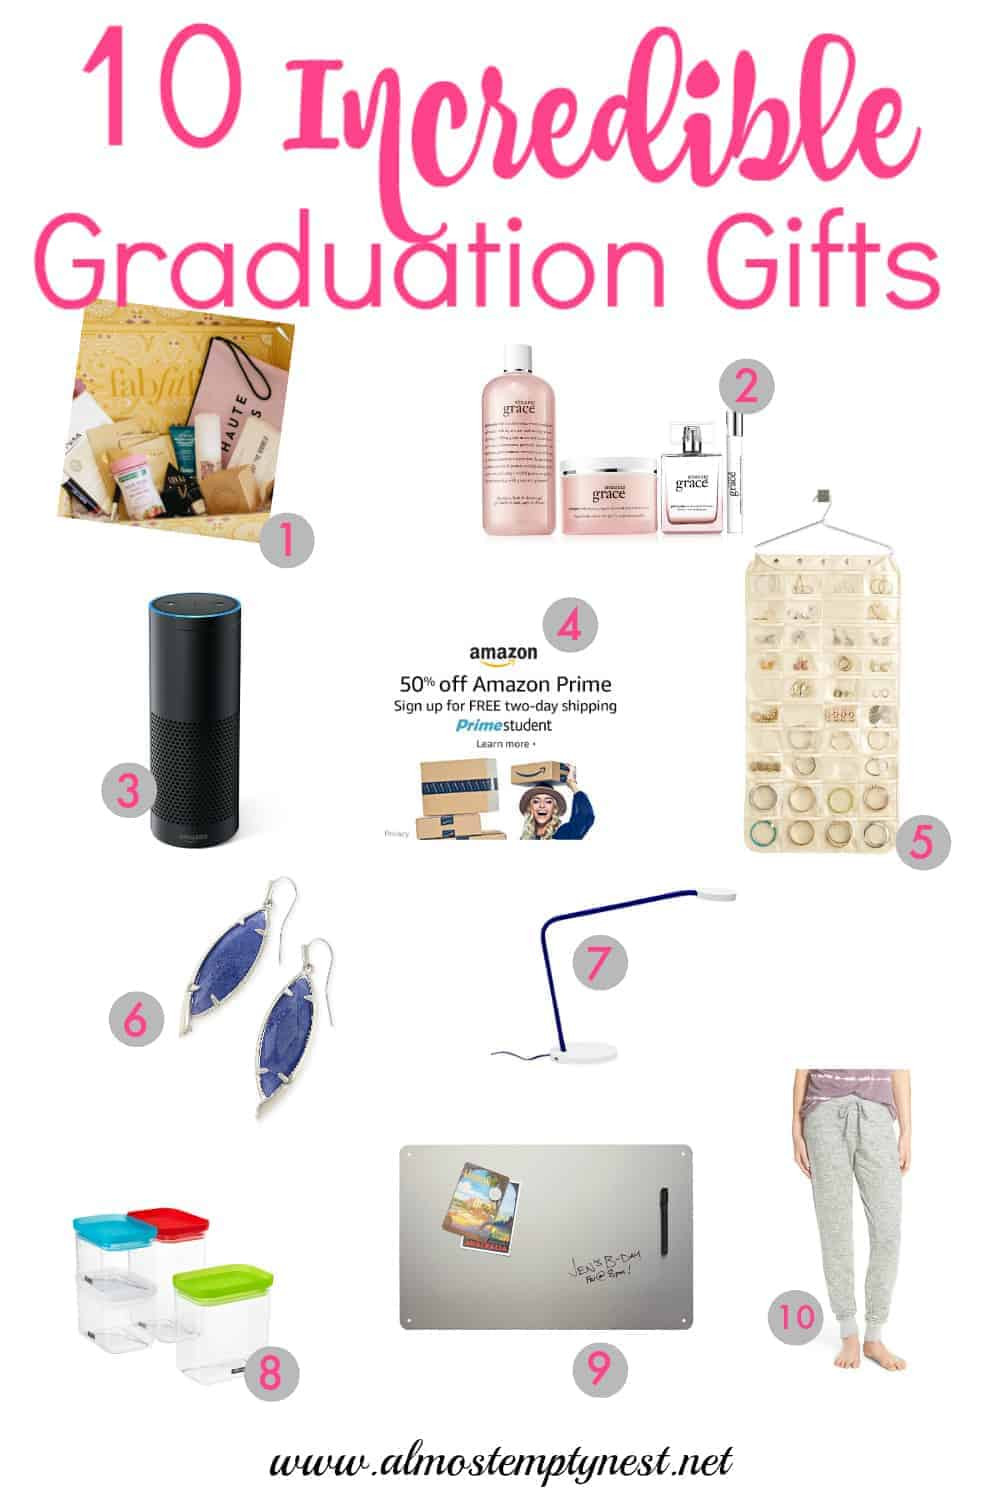 Graduation Gift Ideas For Girls  10 Incredible Graduation Gifts for Girls Almost Empty Nest